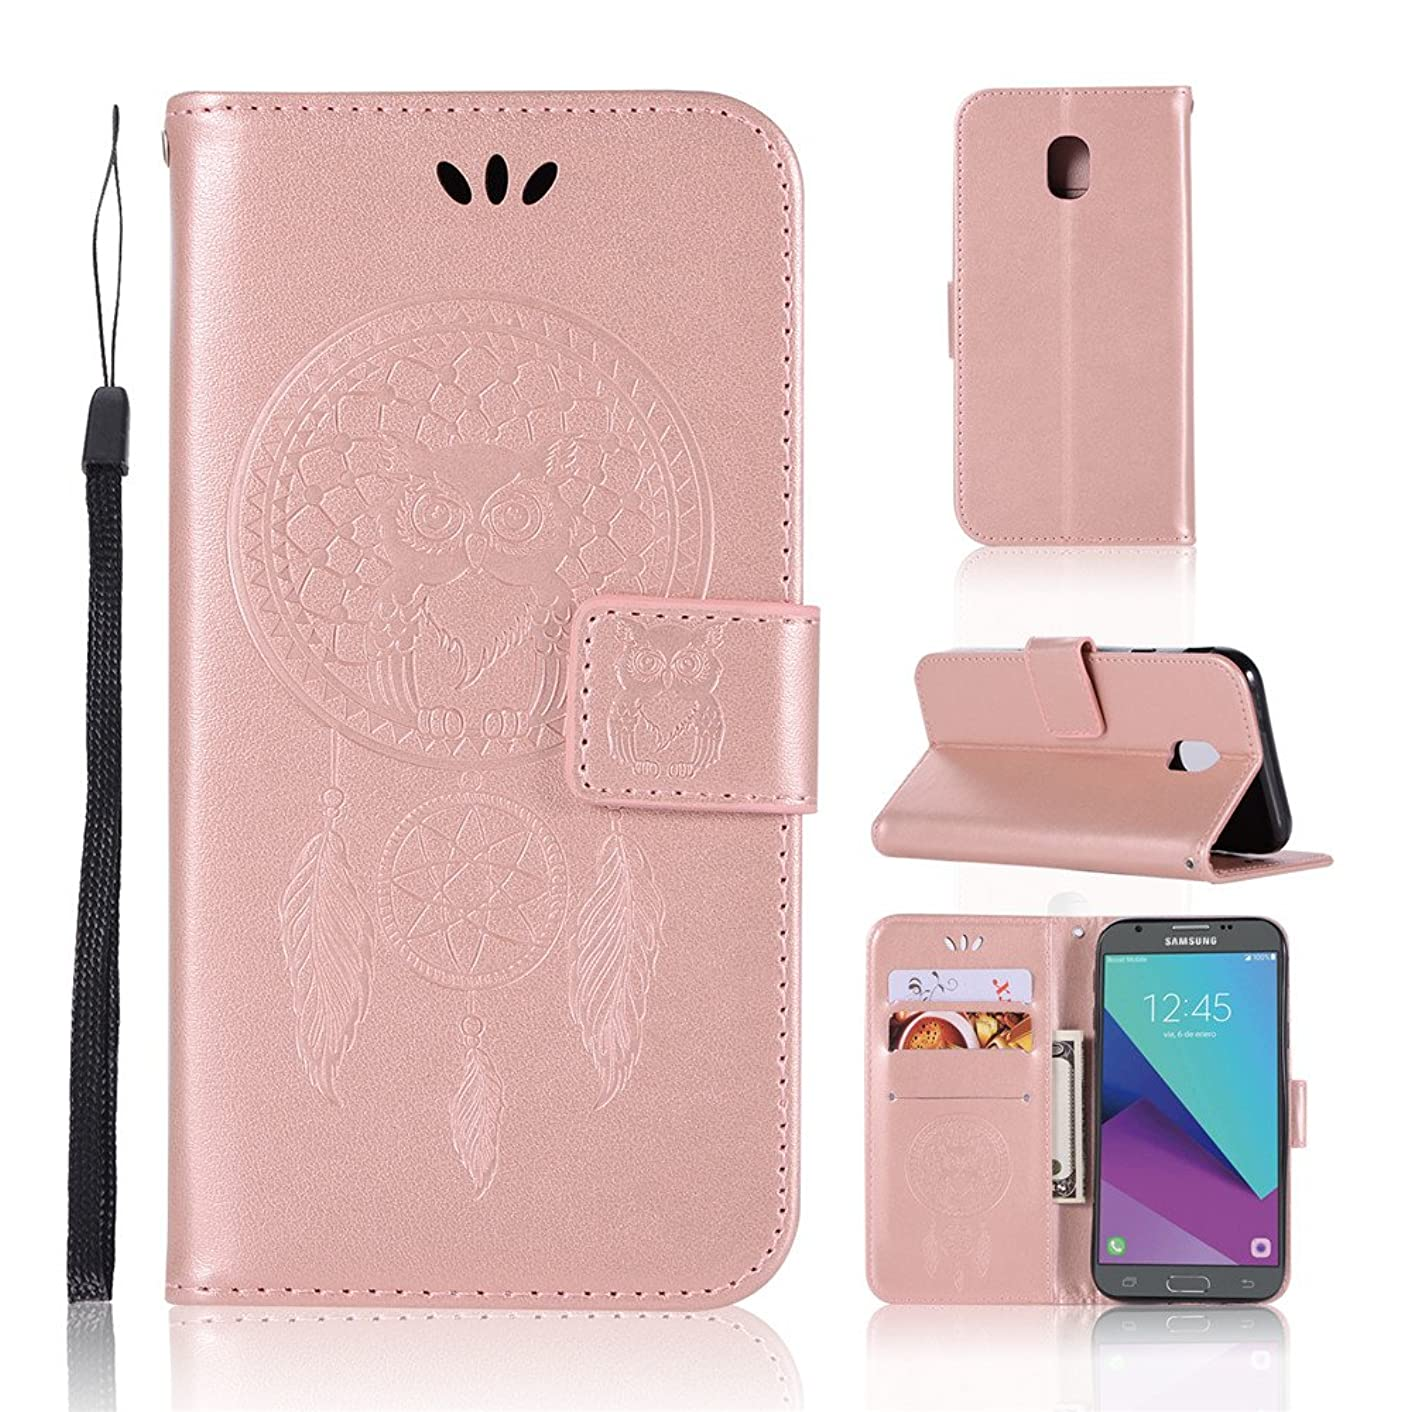 IVY Wallet Case Galaxy J7 Pro Flip Cover with Owl Imprint Technology and [Kickstand][Wrist Strap] for Samsung Galaxy J7 Pro SM-J730 2017 - Rose Gold